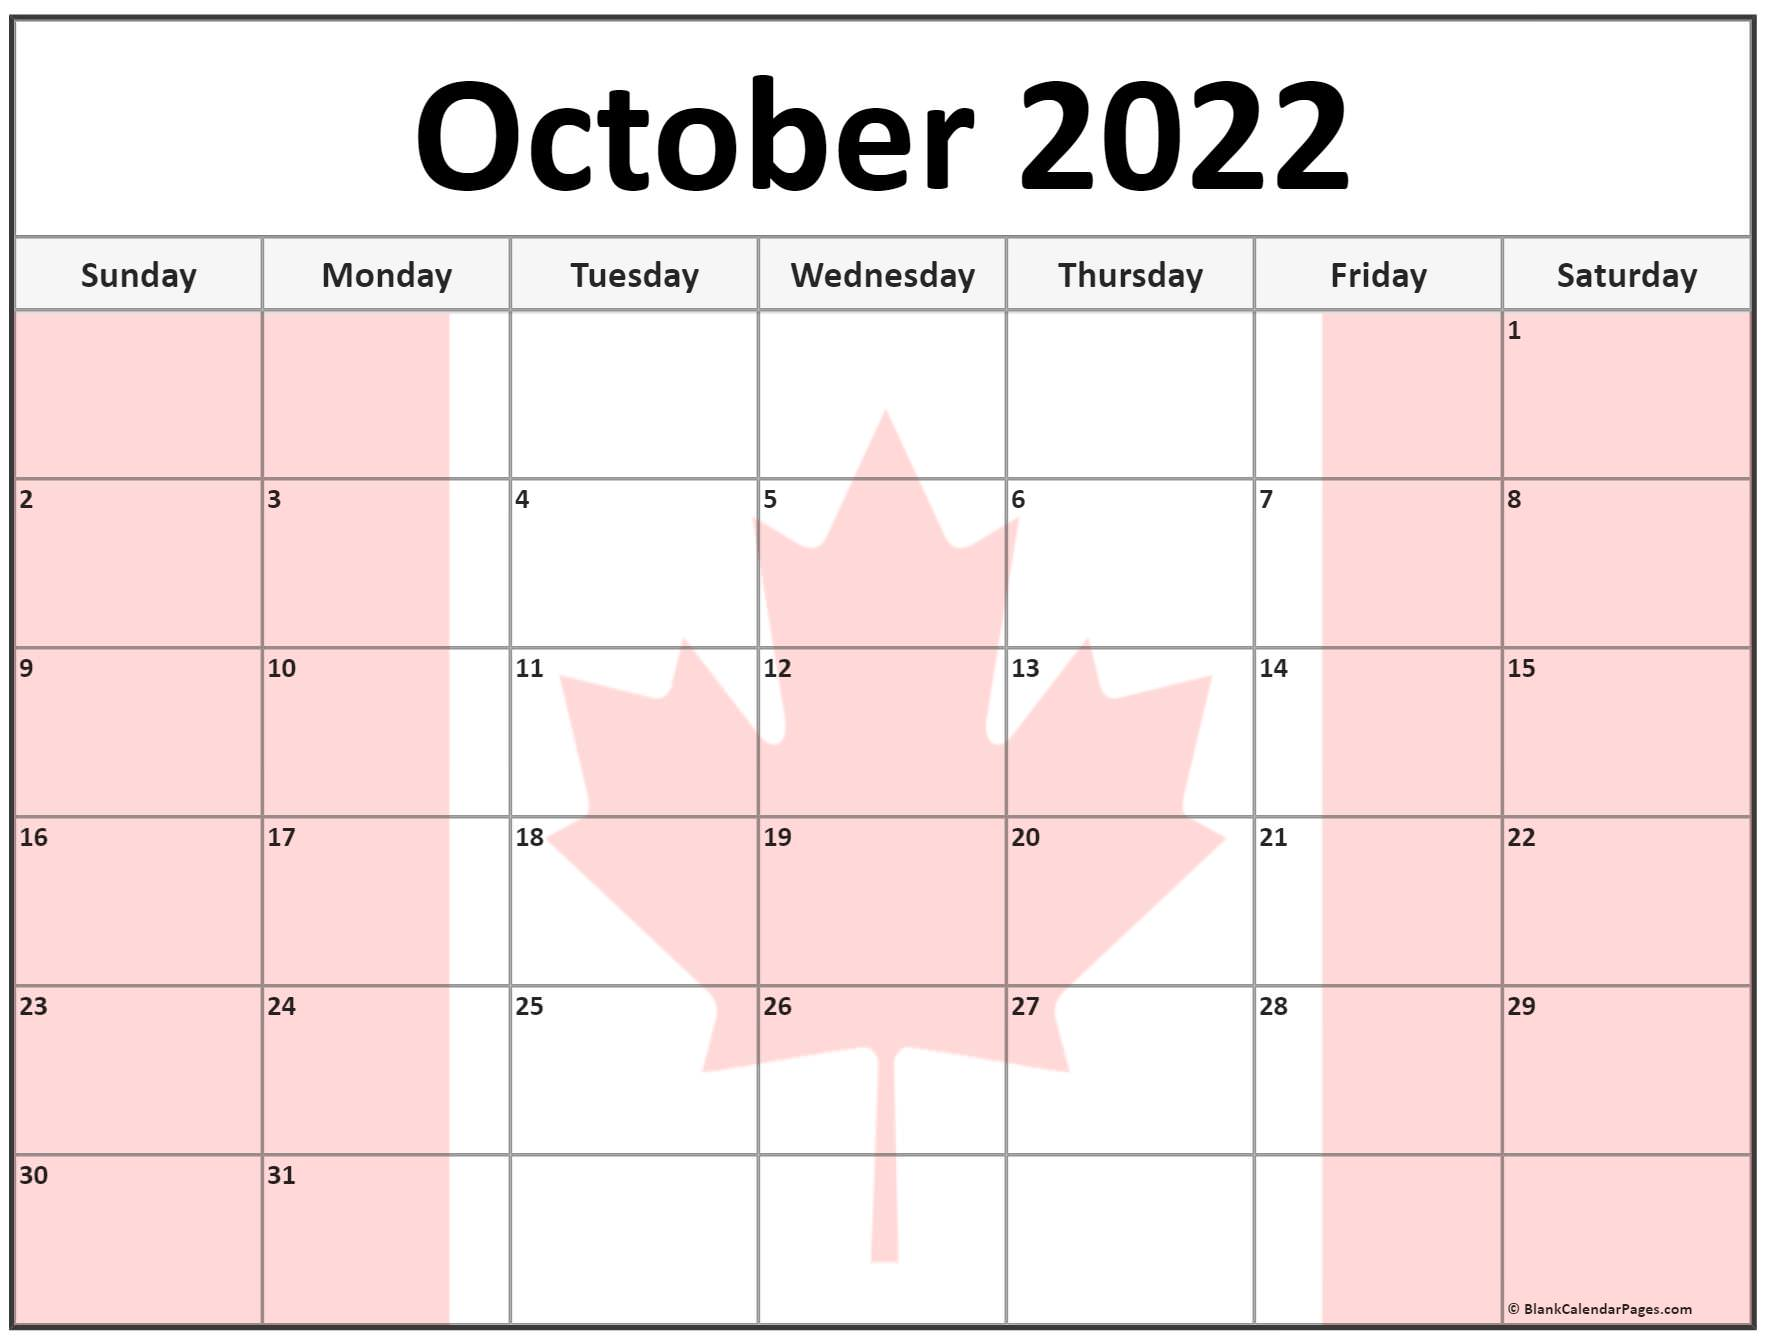 Collection of October 2022 photo calendars with image filters.